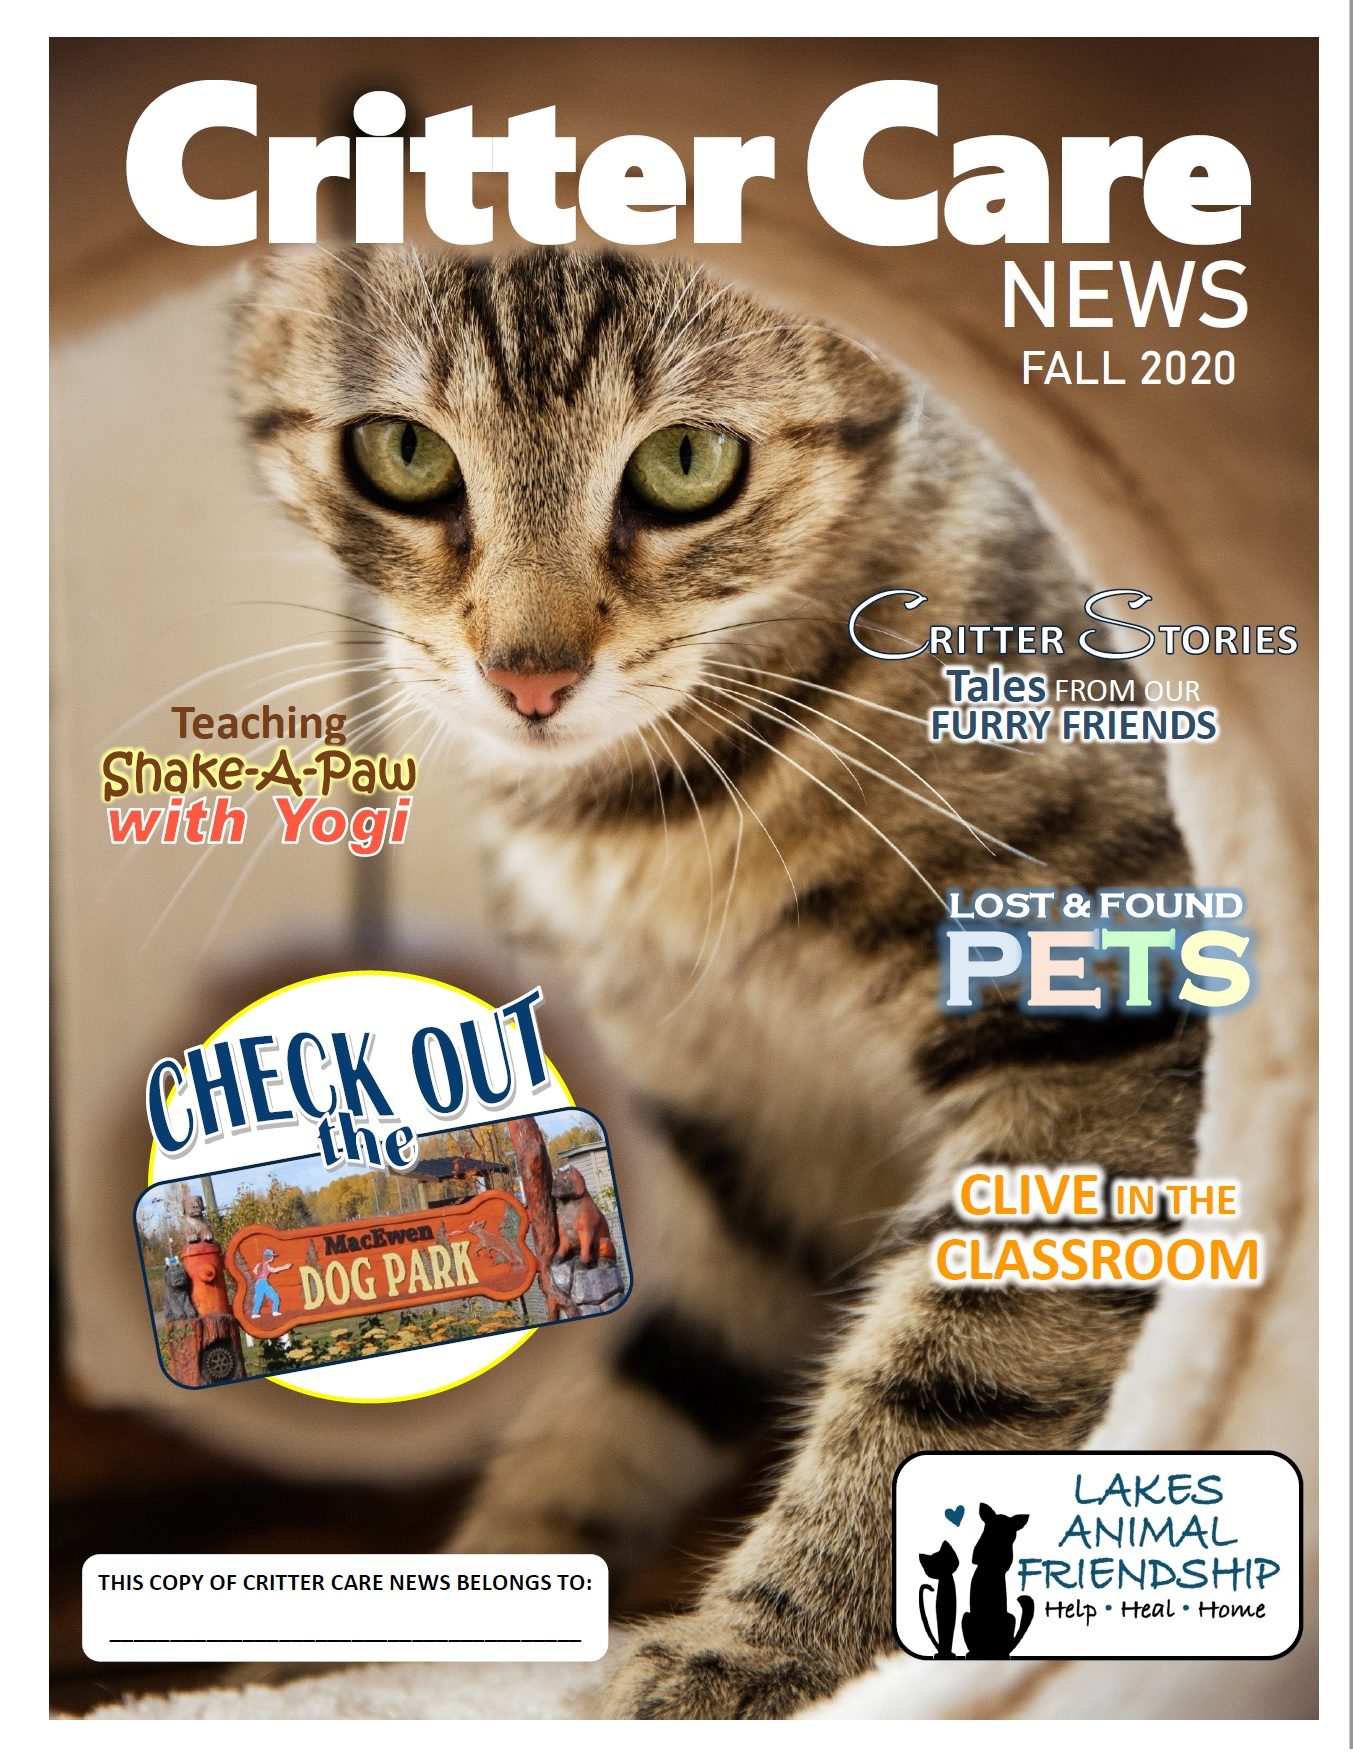 Critter Care News – Fall 2020